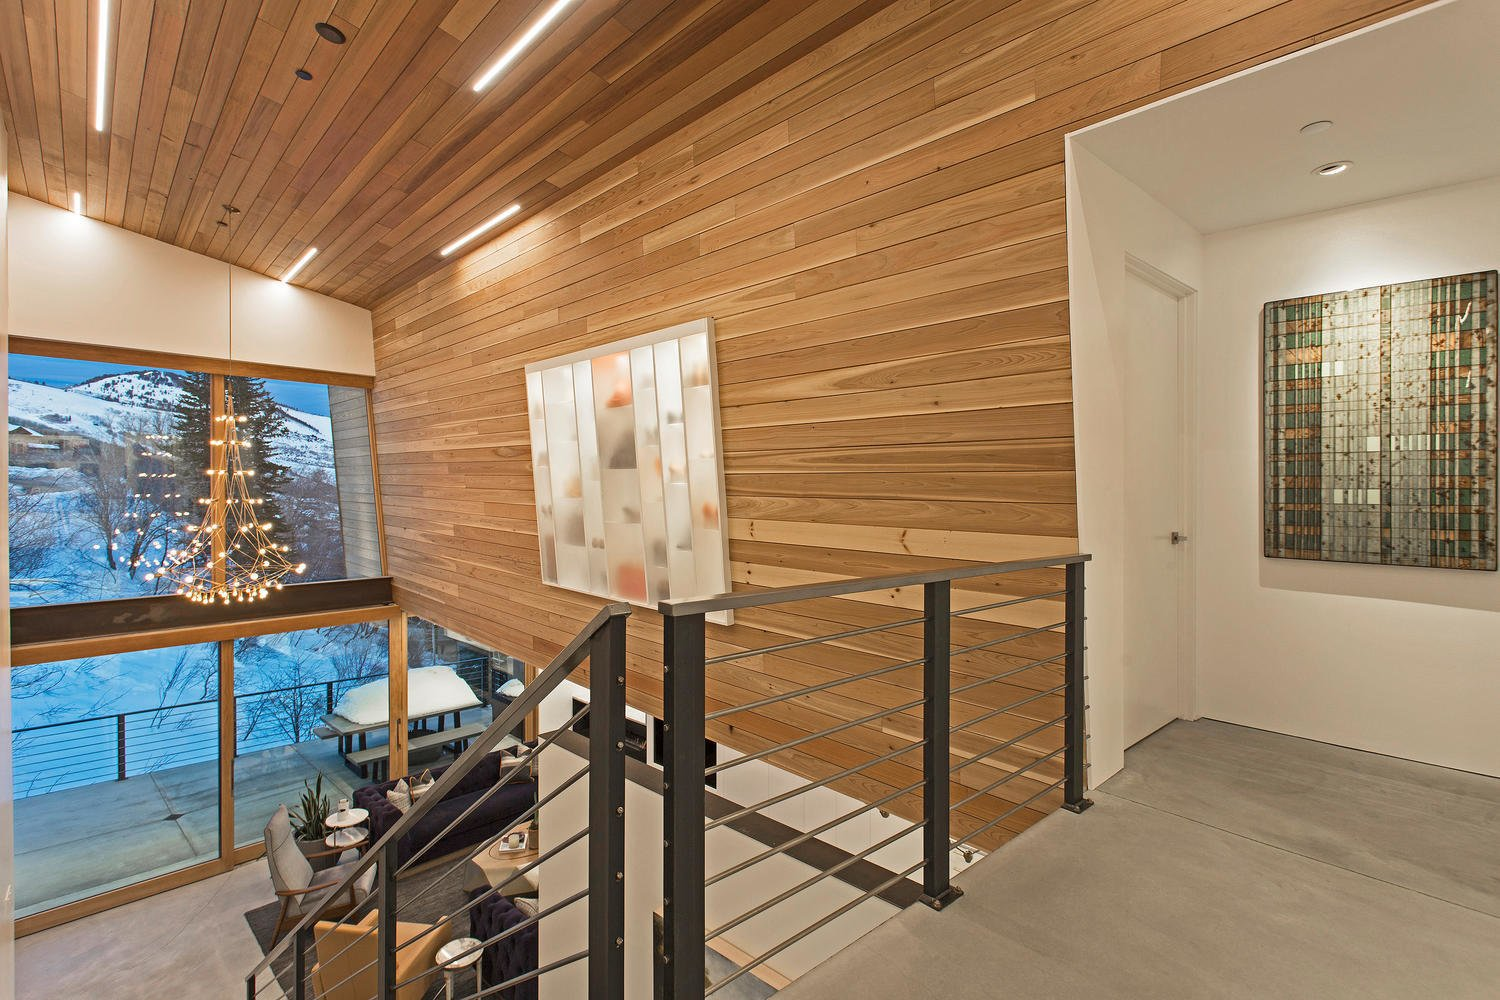 Photo 6 of 10 in A Plunging Roof Carves Out Space in This Park City Home Offered at $2.4M